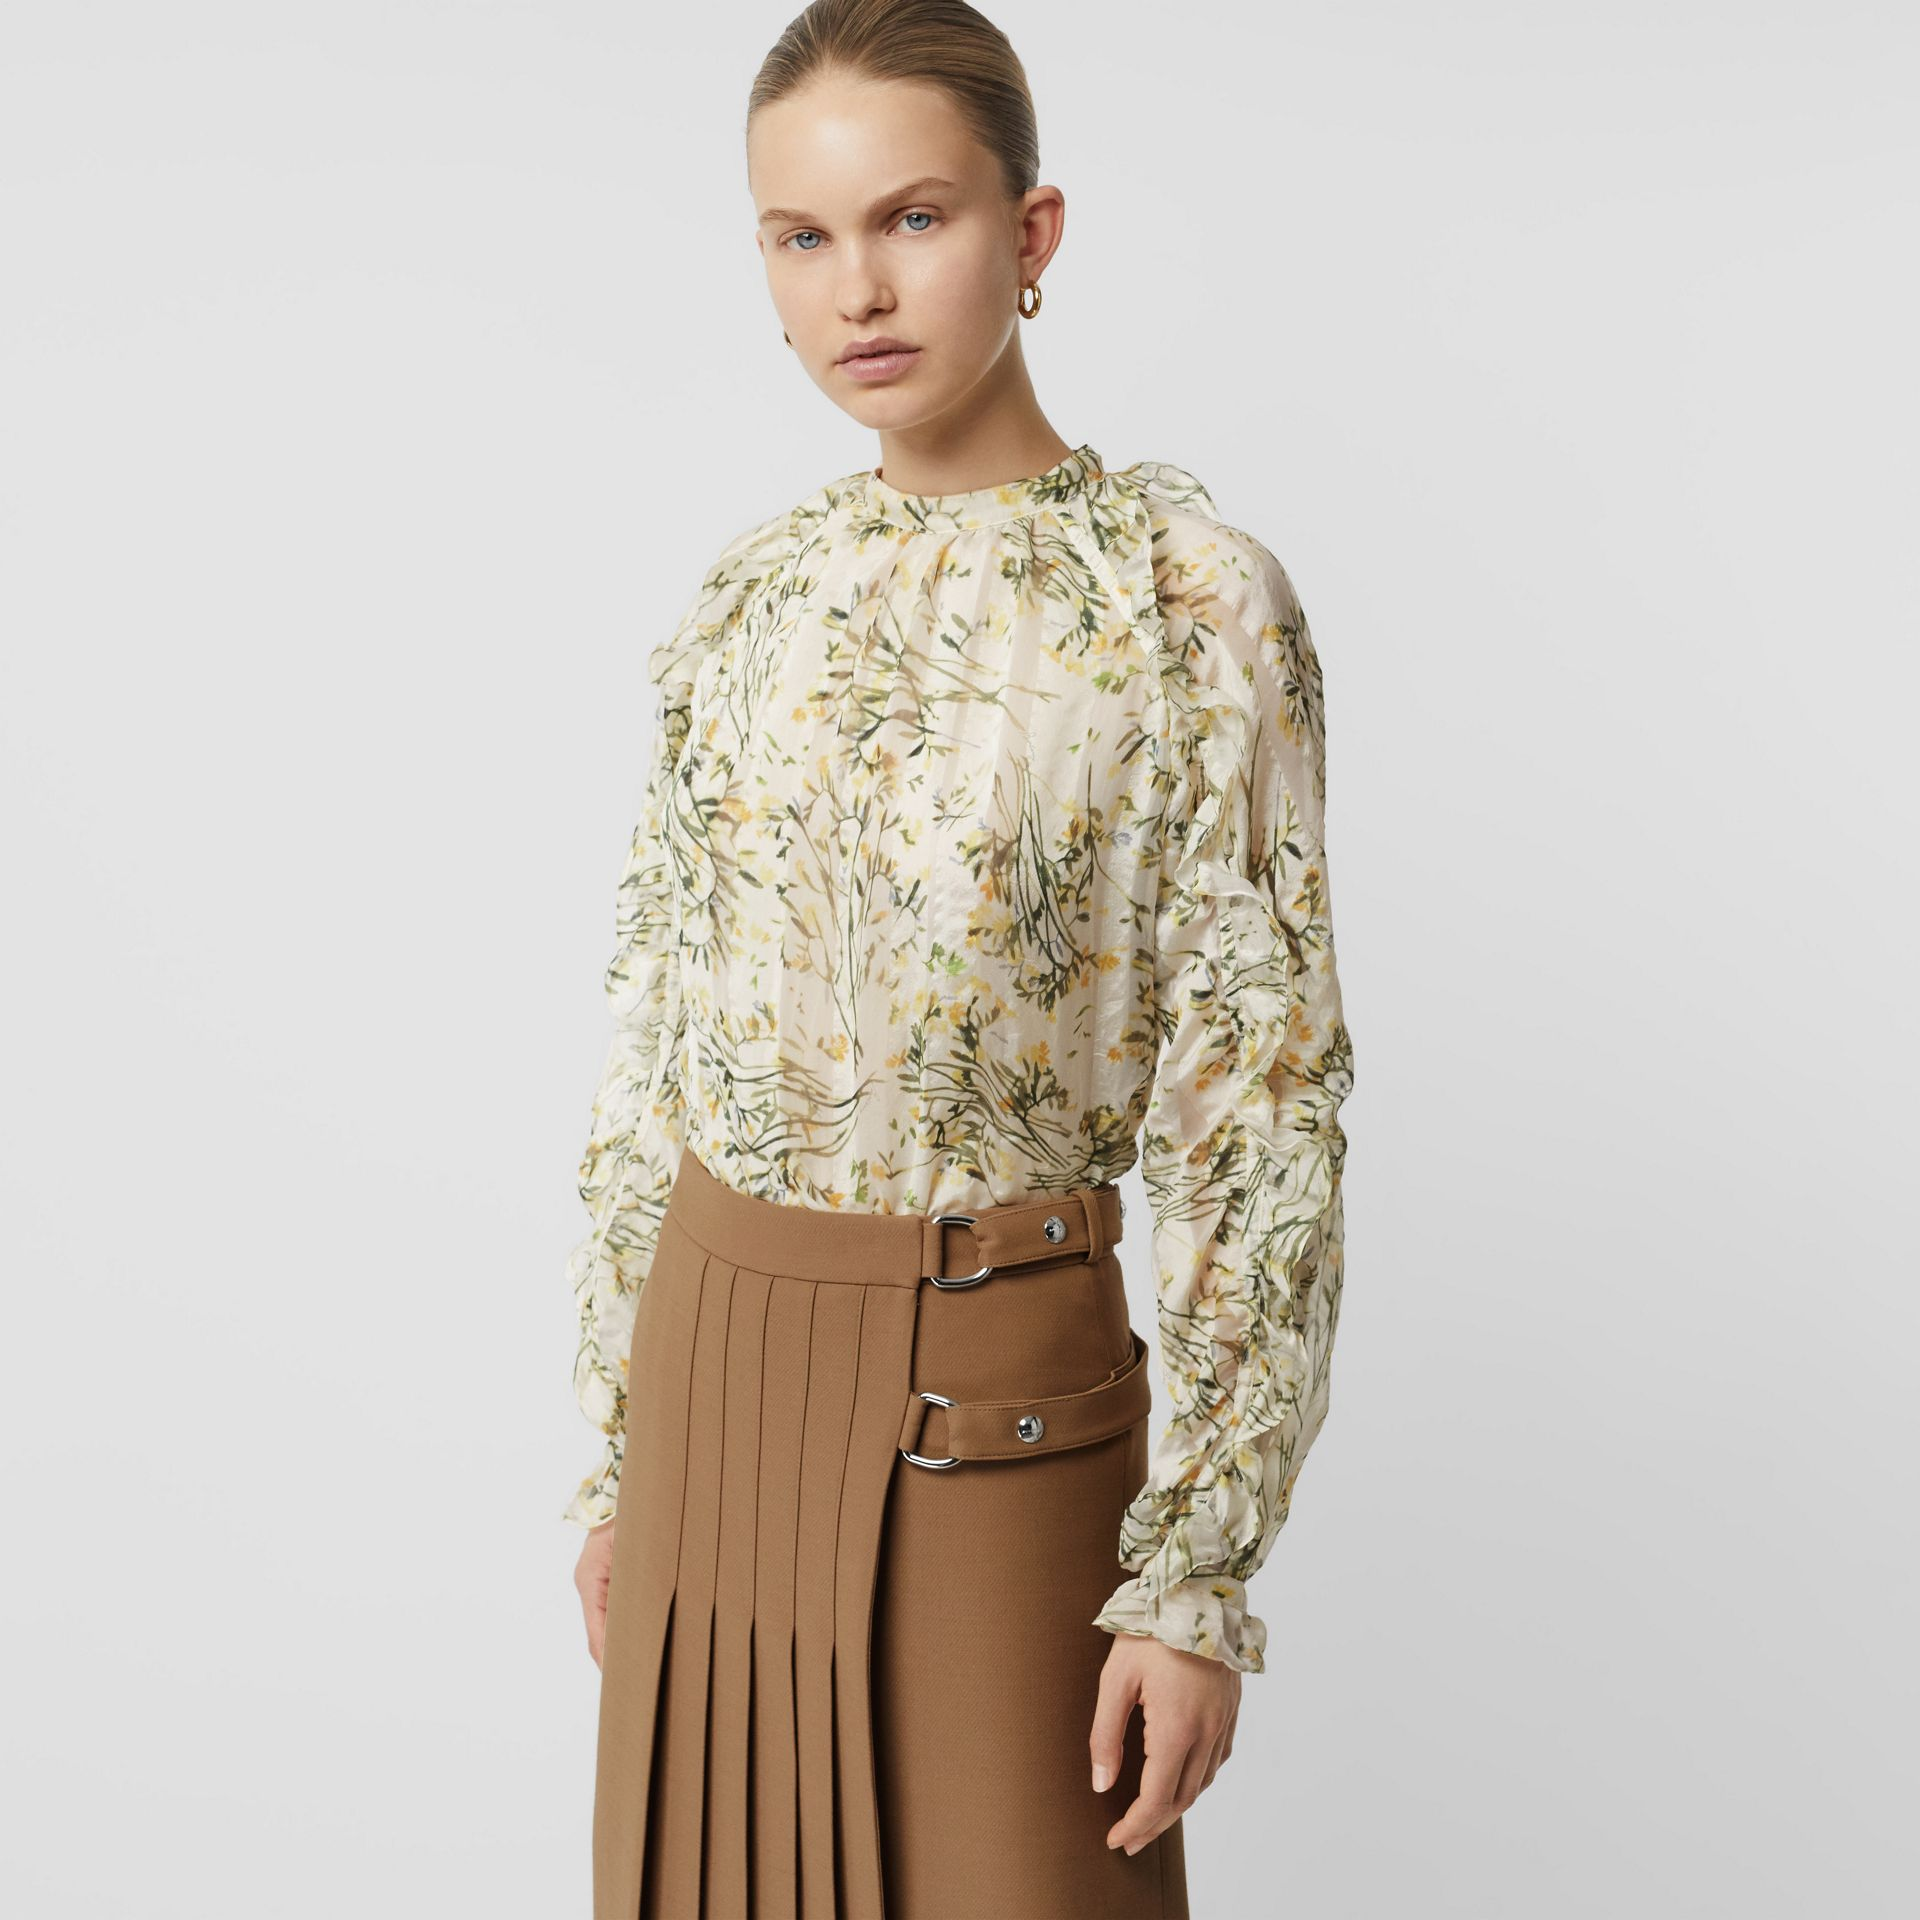 Ruffle Detail Floral Silk Blend Blouse in Lawn Green - Women | Burberry - gallery image 4